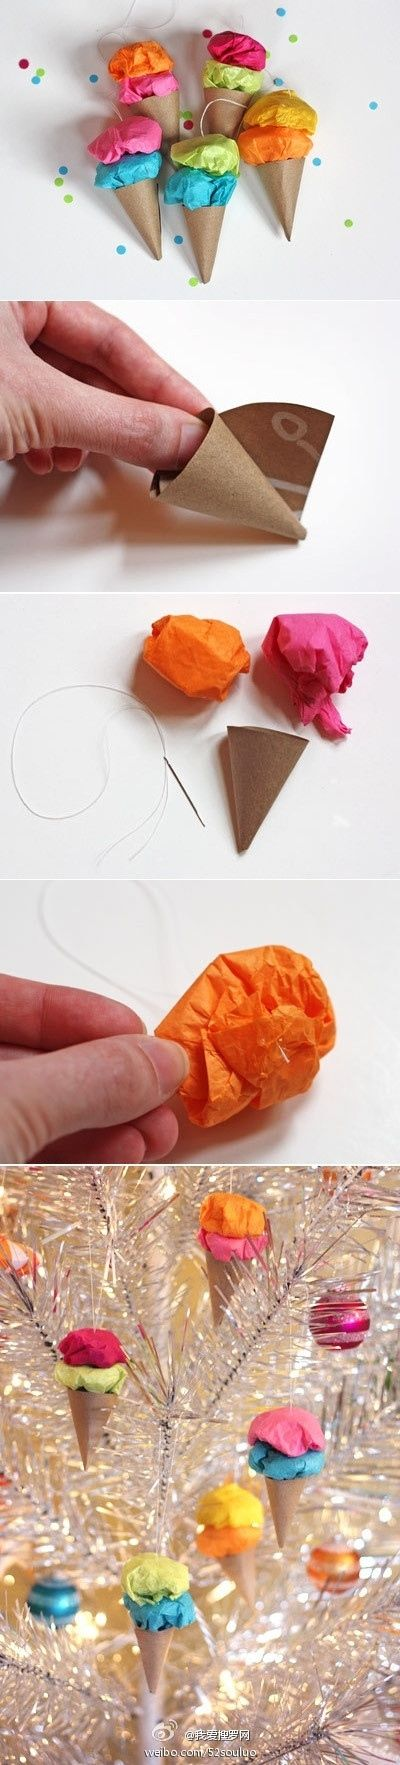 Easy paper ice cream ornaments | #DIY